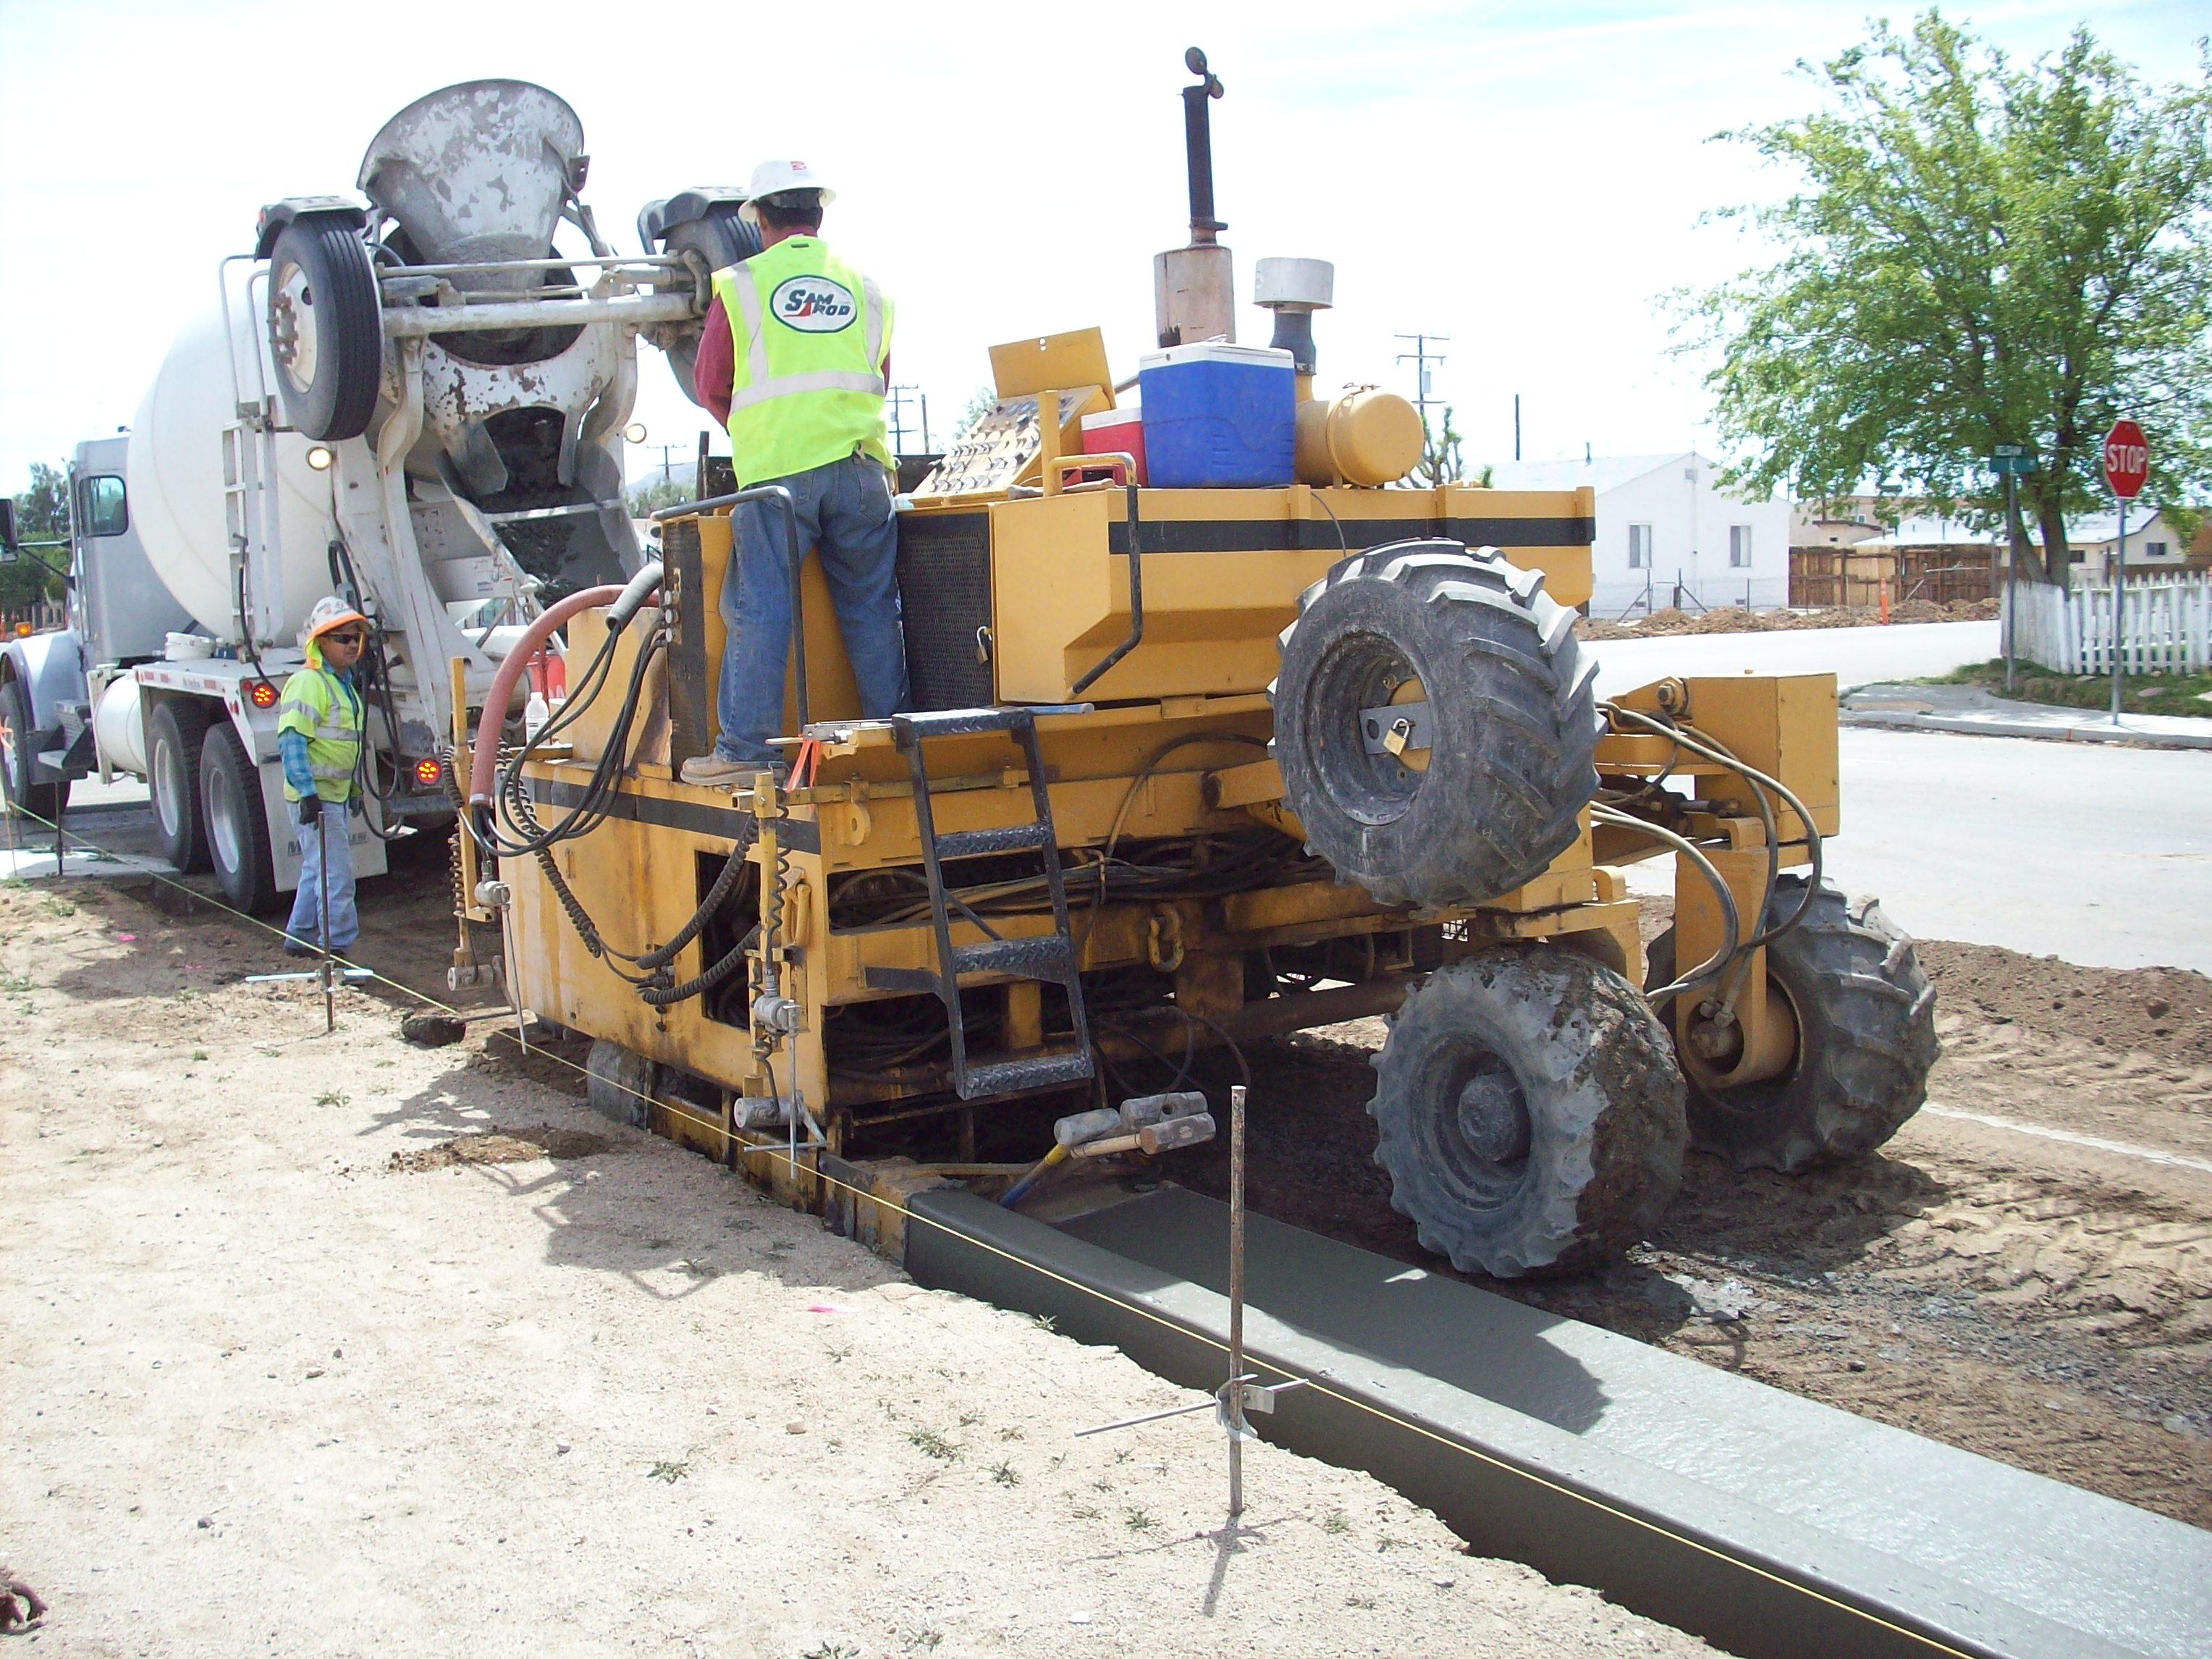 Curb Amp Gutter Begins In Mojave The Mojave Foundation